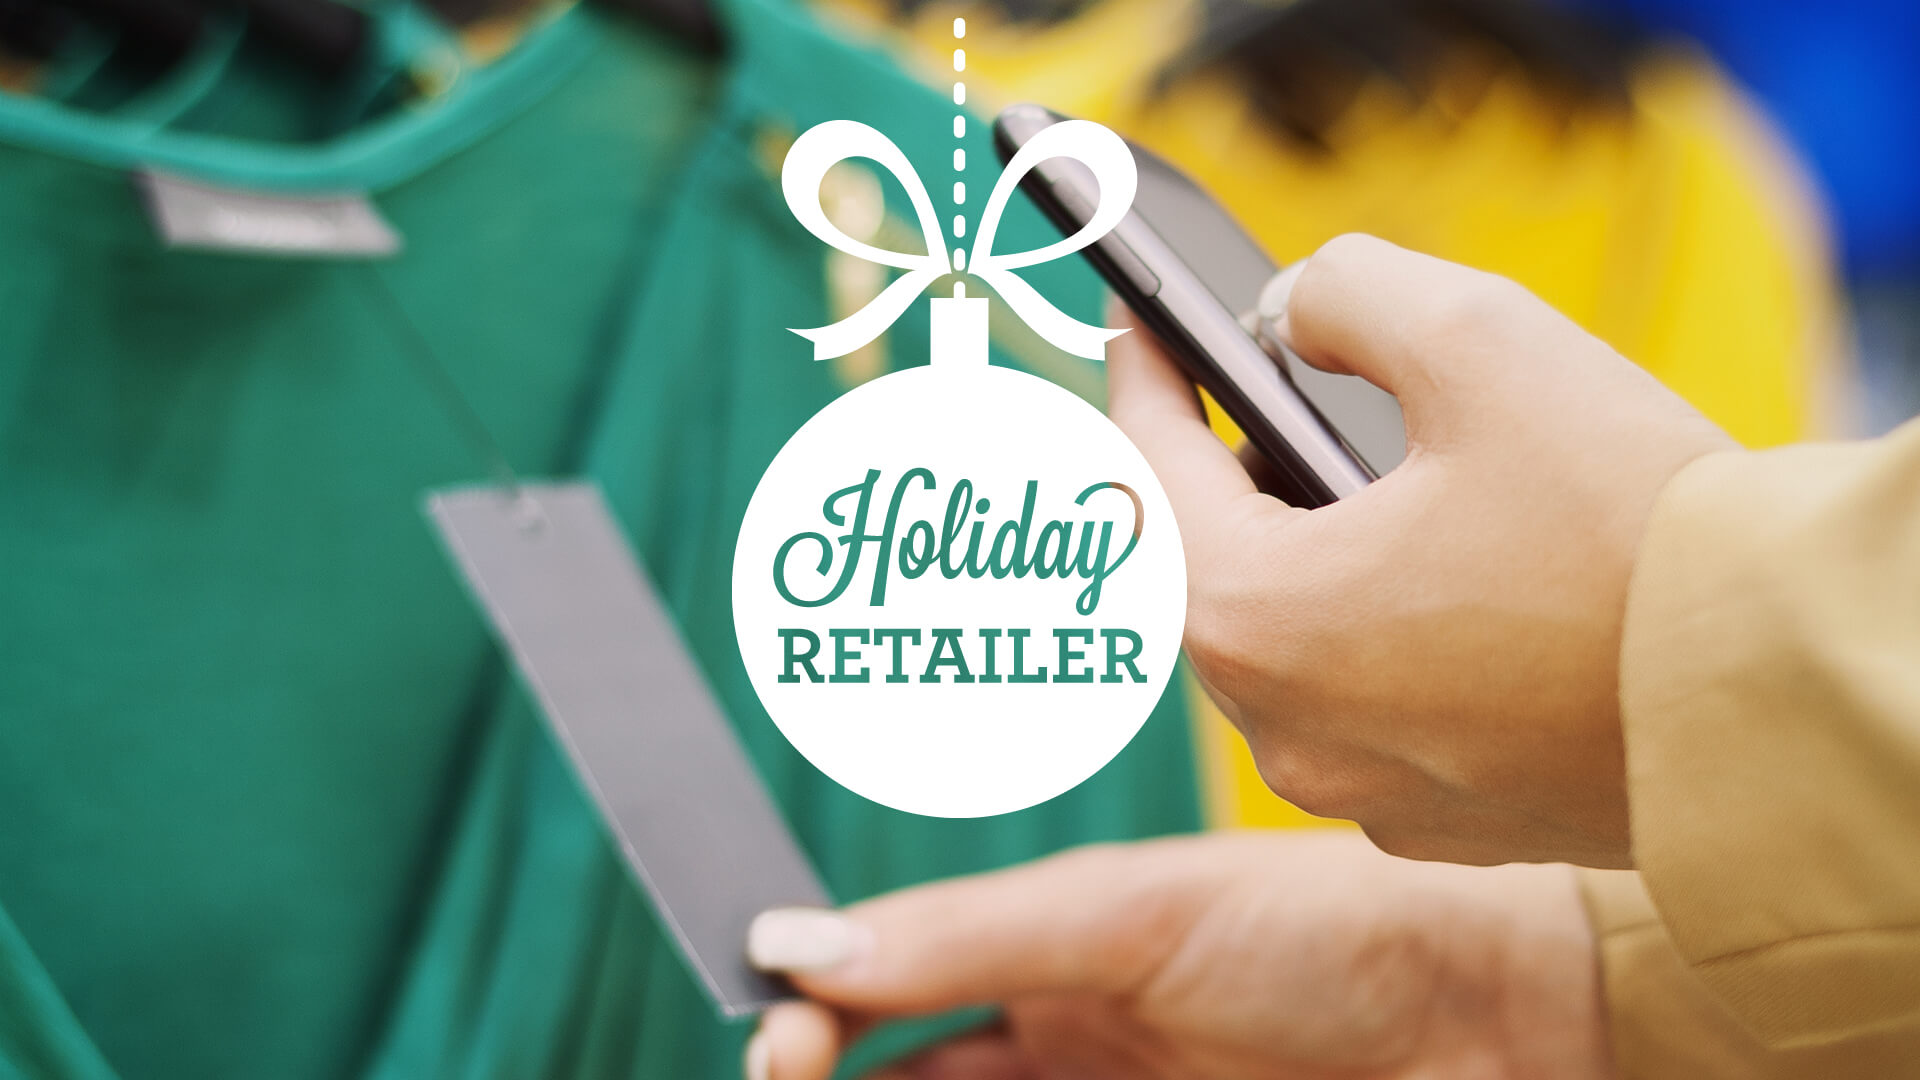 holiday-retailer2016-mobile2-ss-1920